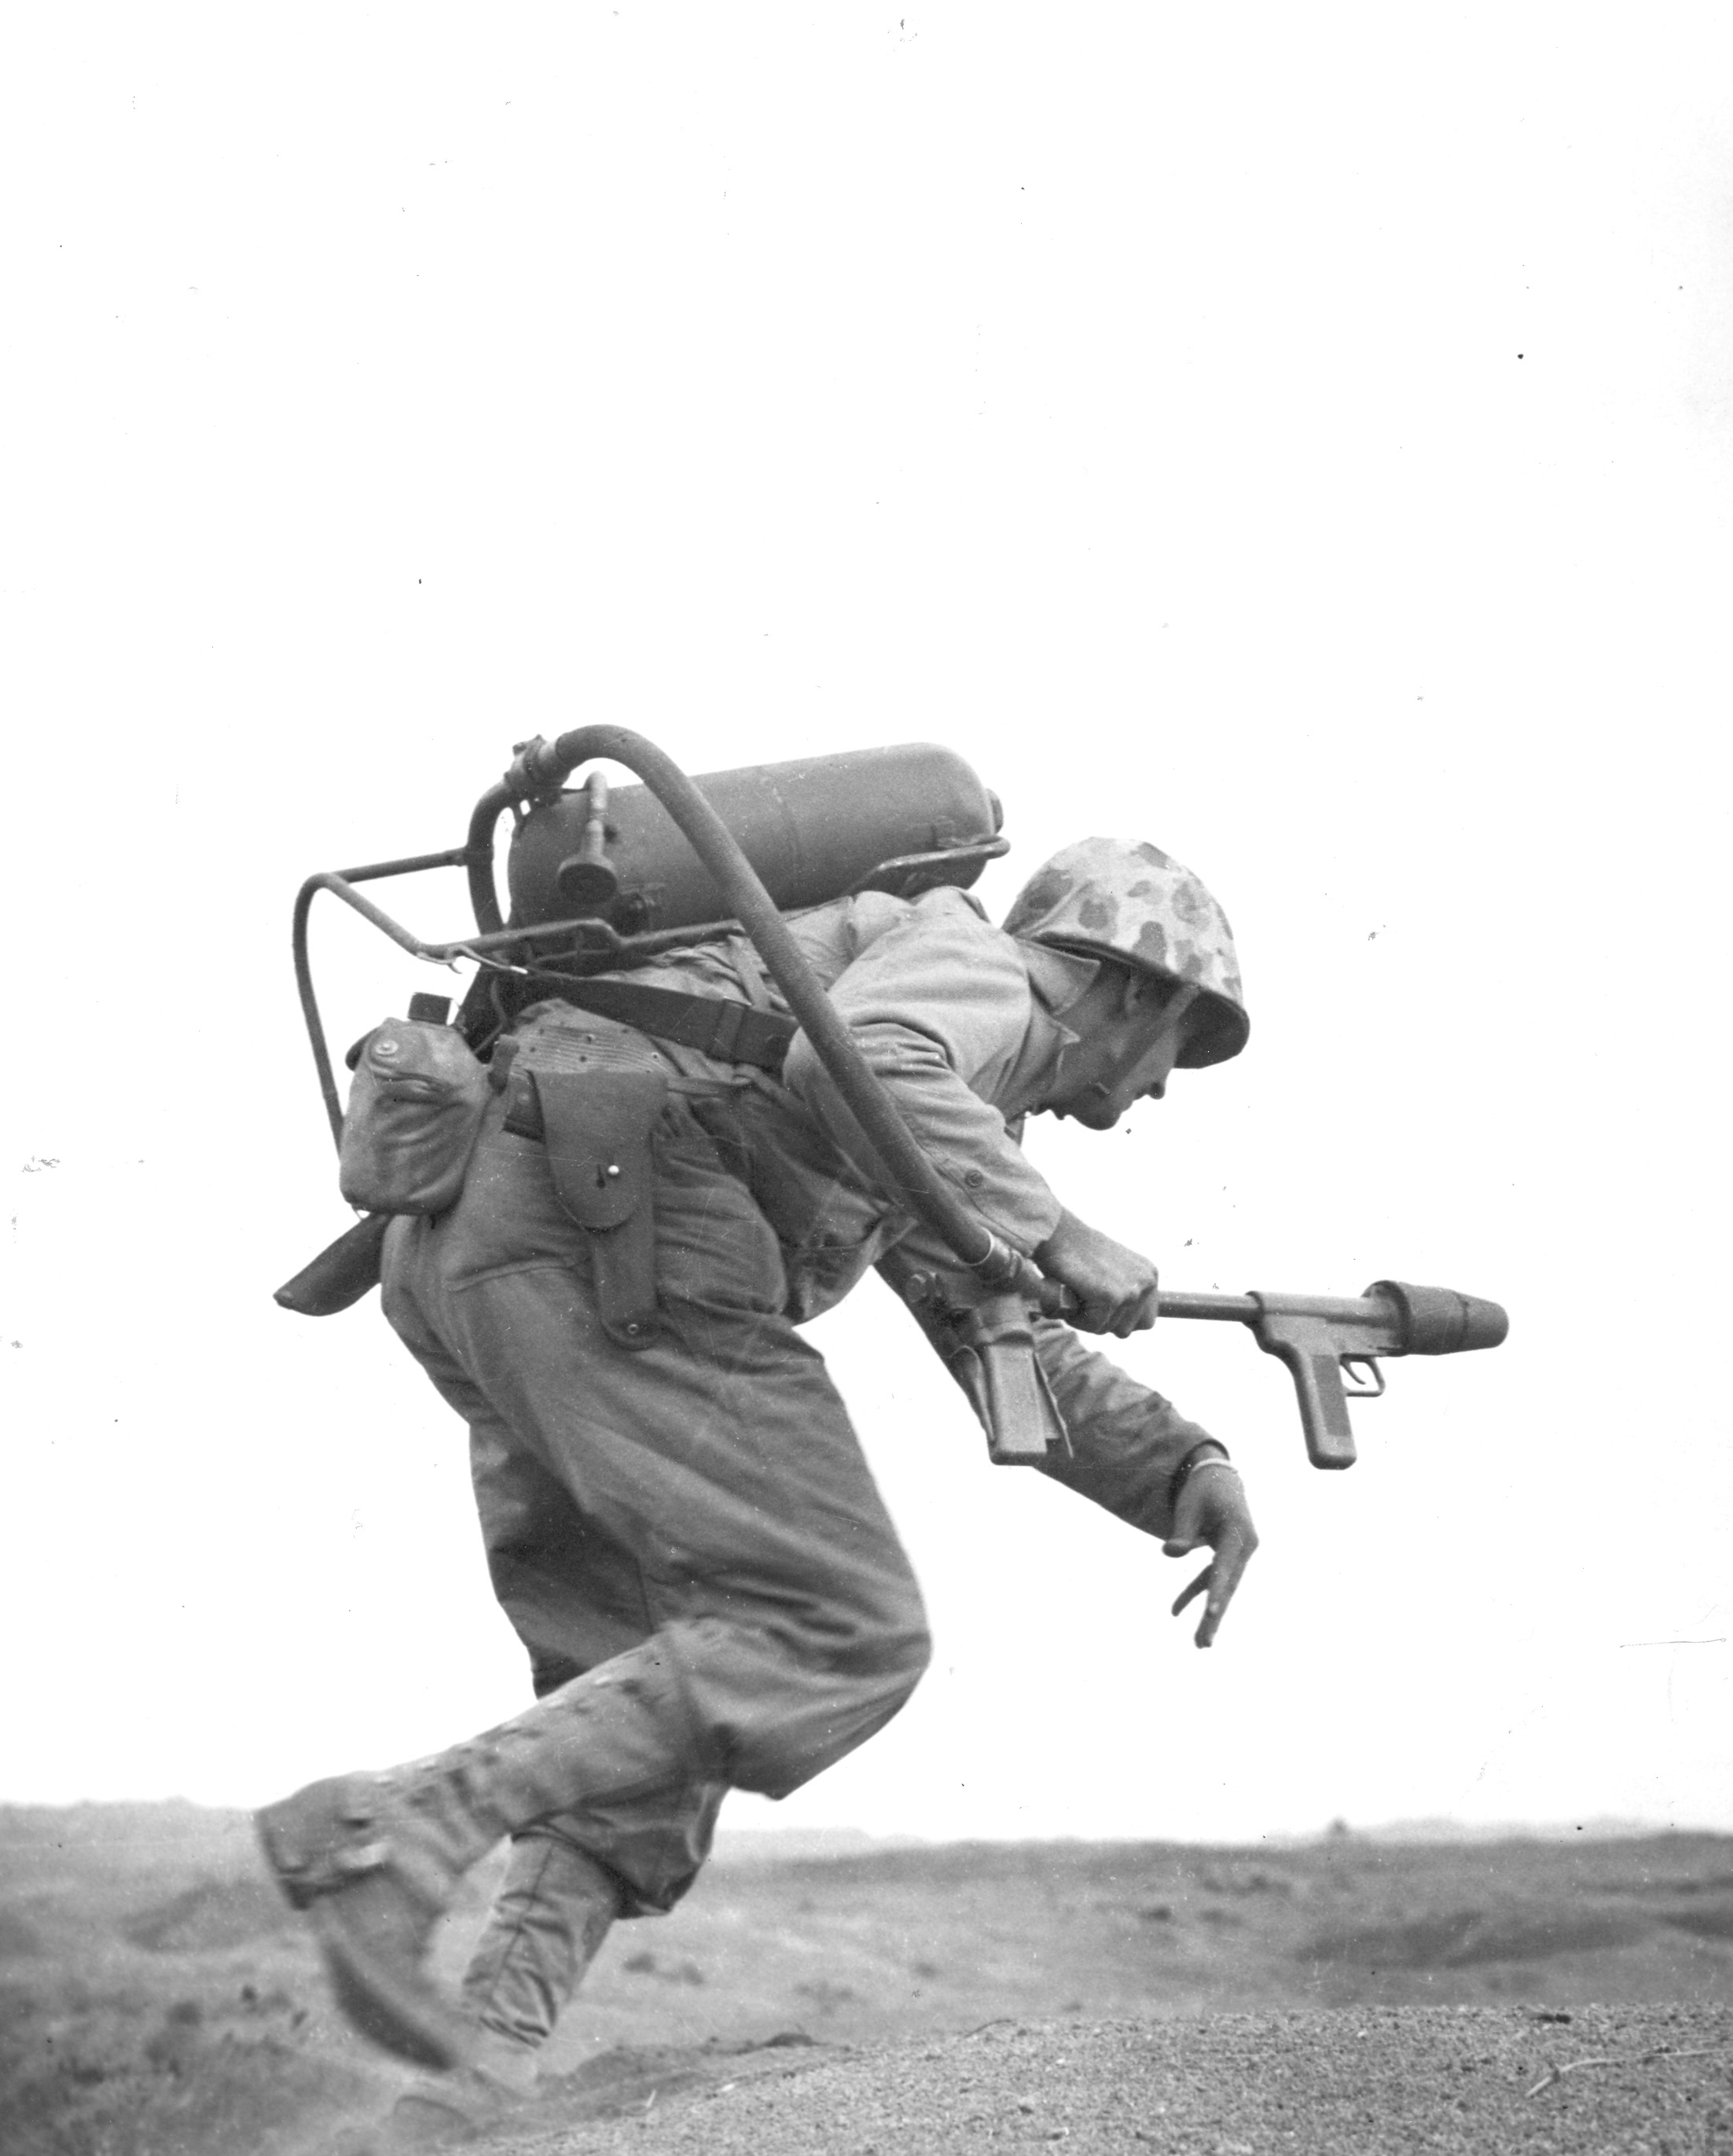 File:Flamethrower-iwo-jima-194502.jpg